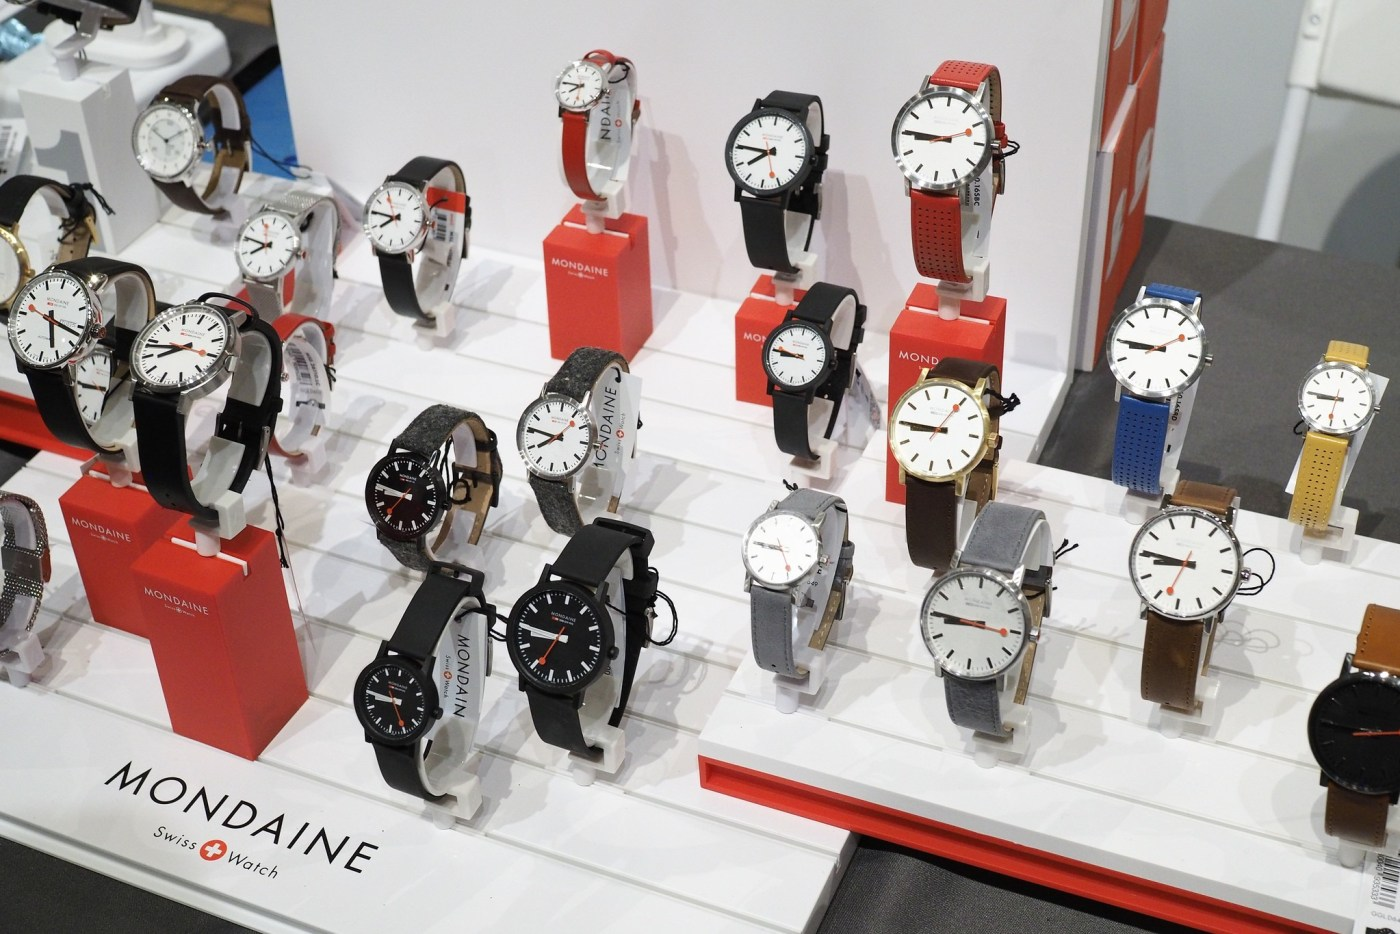 Mondaine watch display